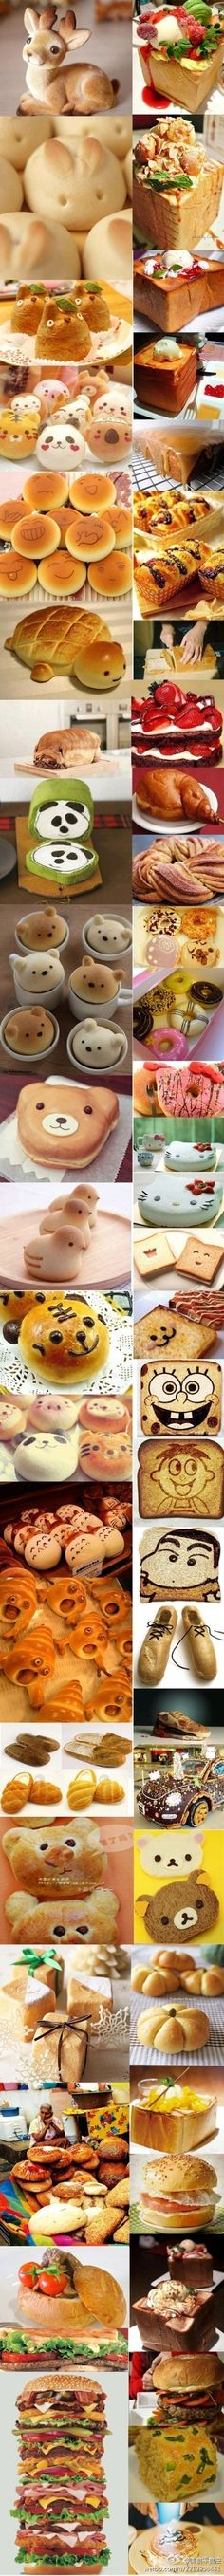 cute bread